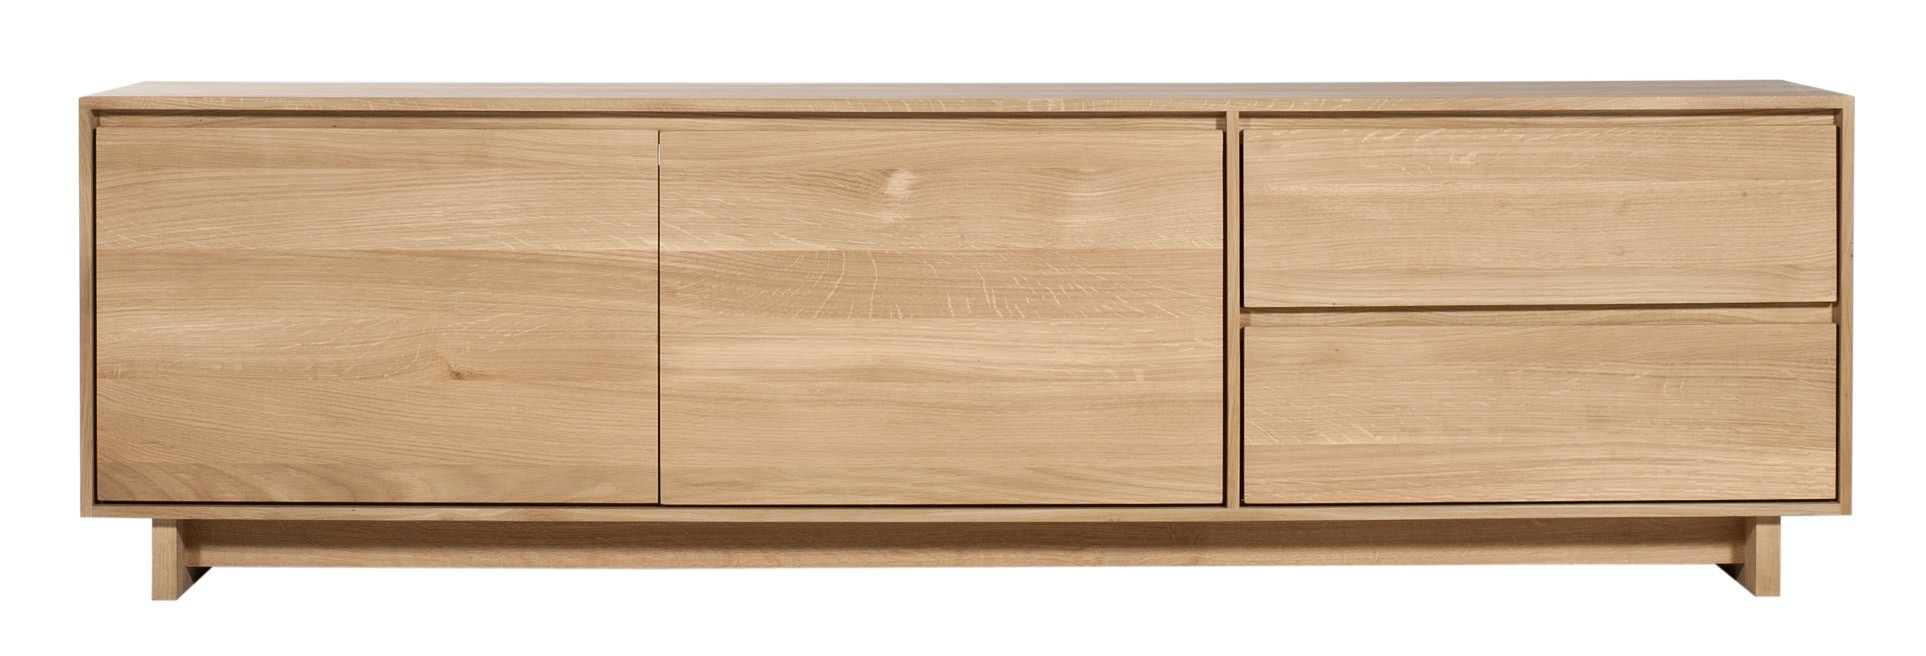 Meuble Tv Oak Wave D Ethnicraft 2 Porte 1 Porte Abattante 1  # Meuble Tv Bas Chene